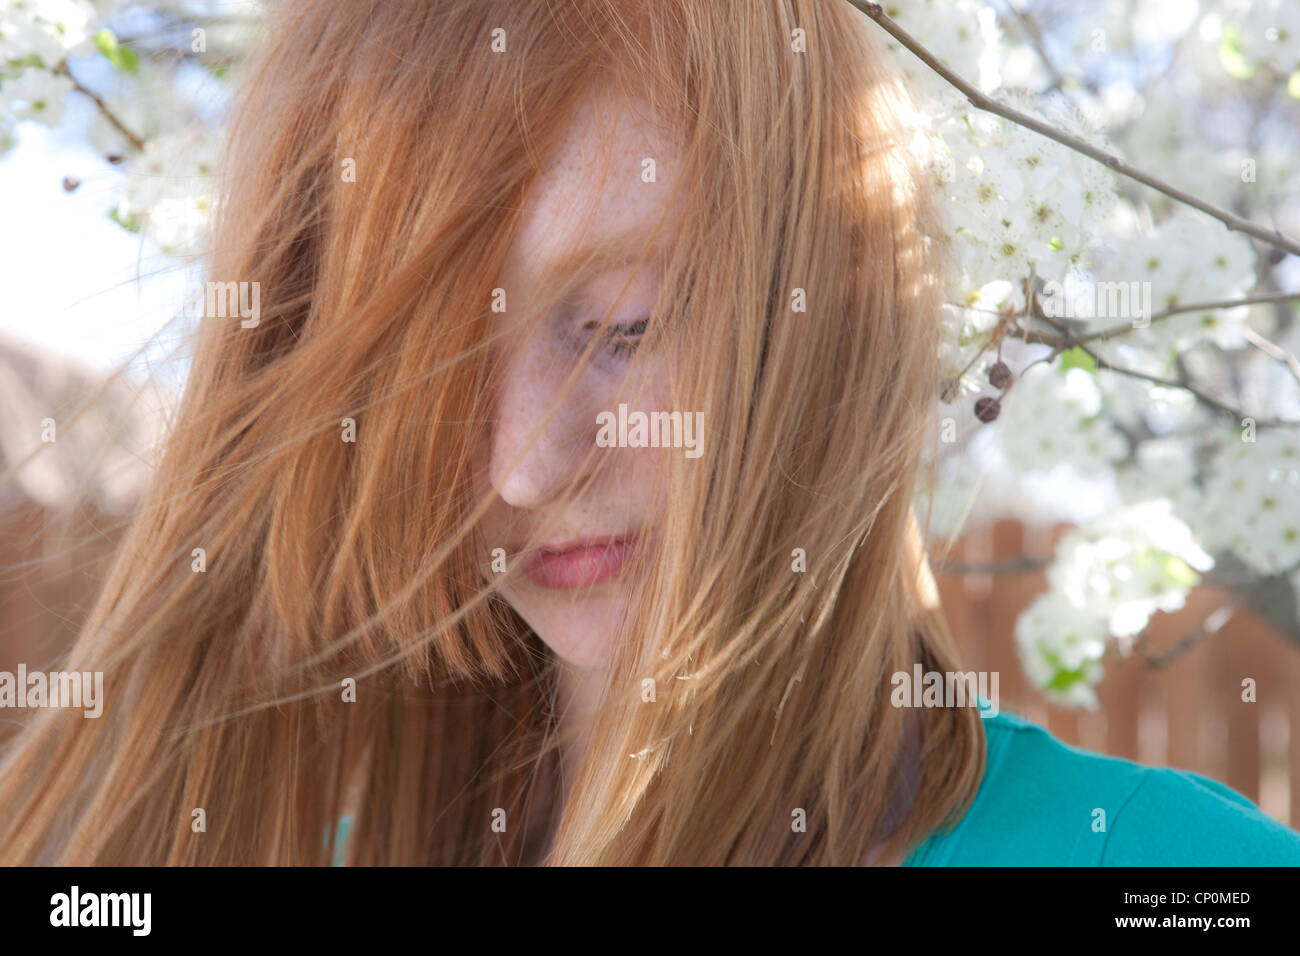 Red Haired Teenage Girl Looks Down With Hair Flowing In Front Of Her